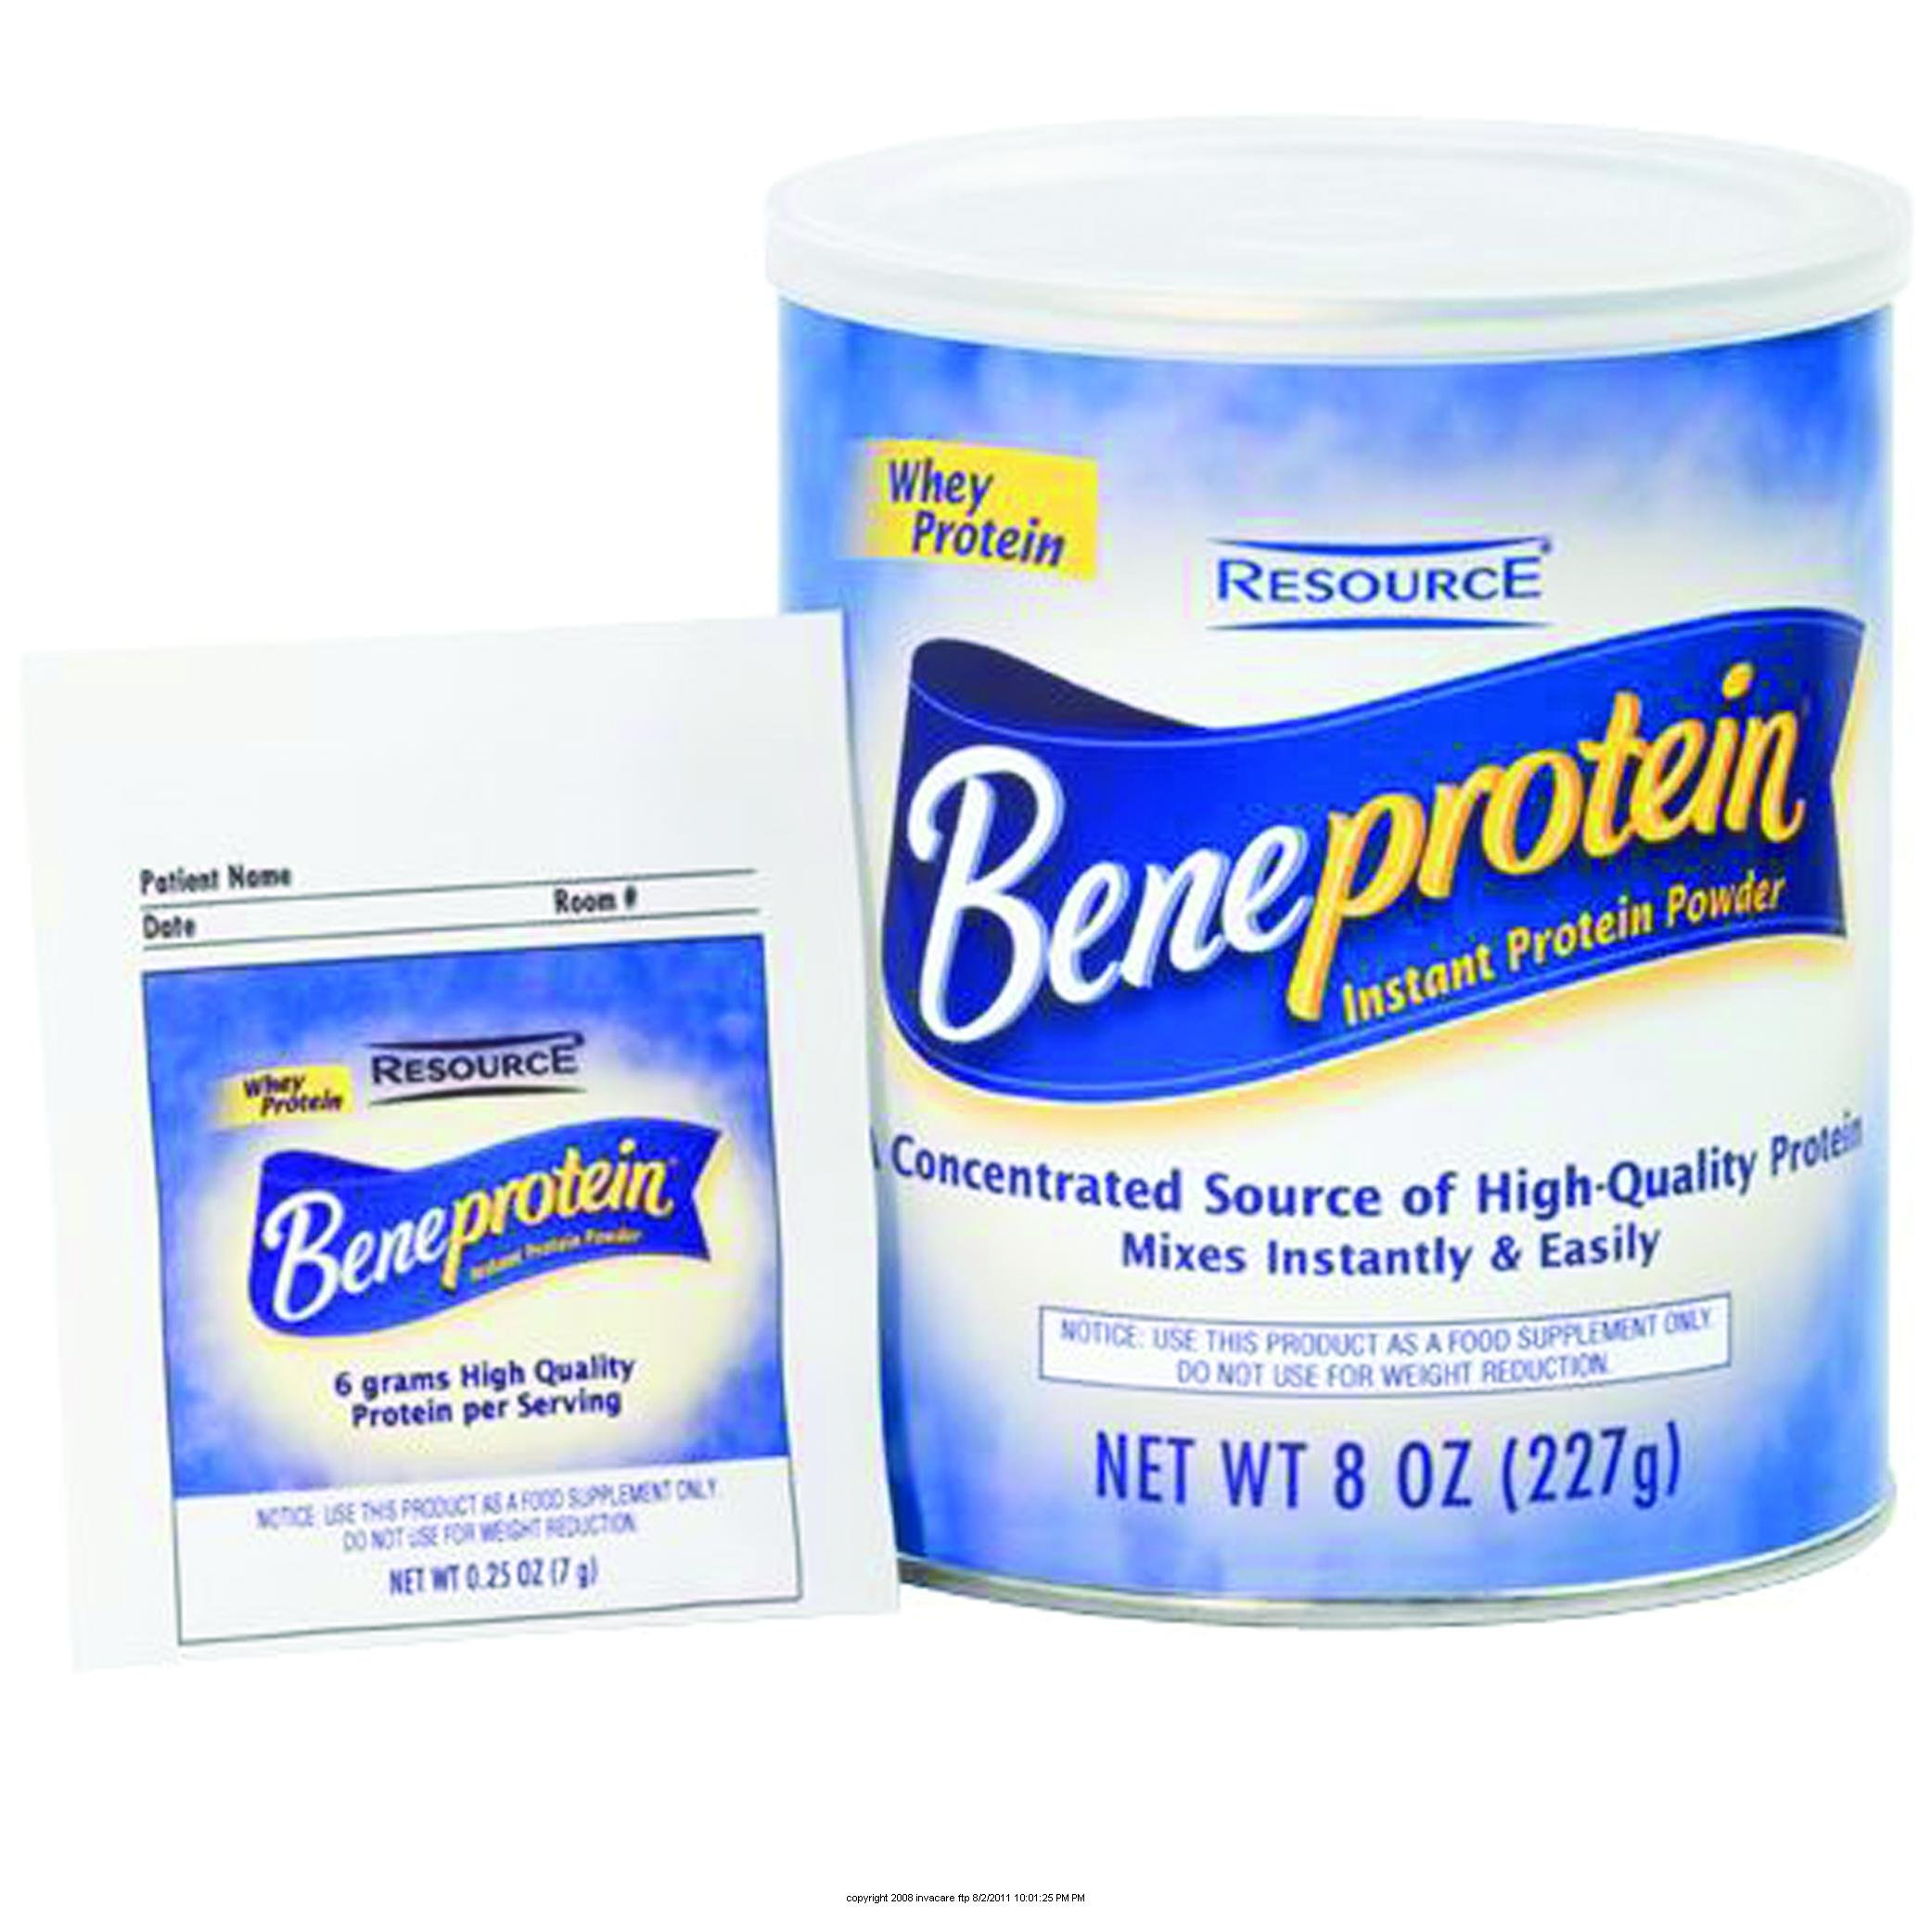 RESOURCE BENEPROTEIN Instant Protein Powder, Resource Beneprotein Pwdr 8 oz, (1 CASE, 6 EACH) by Nestle Nutritional